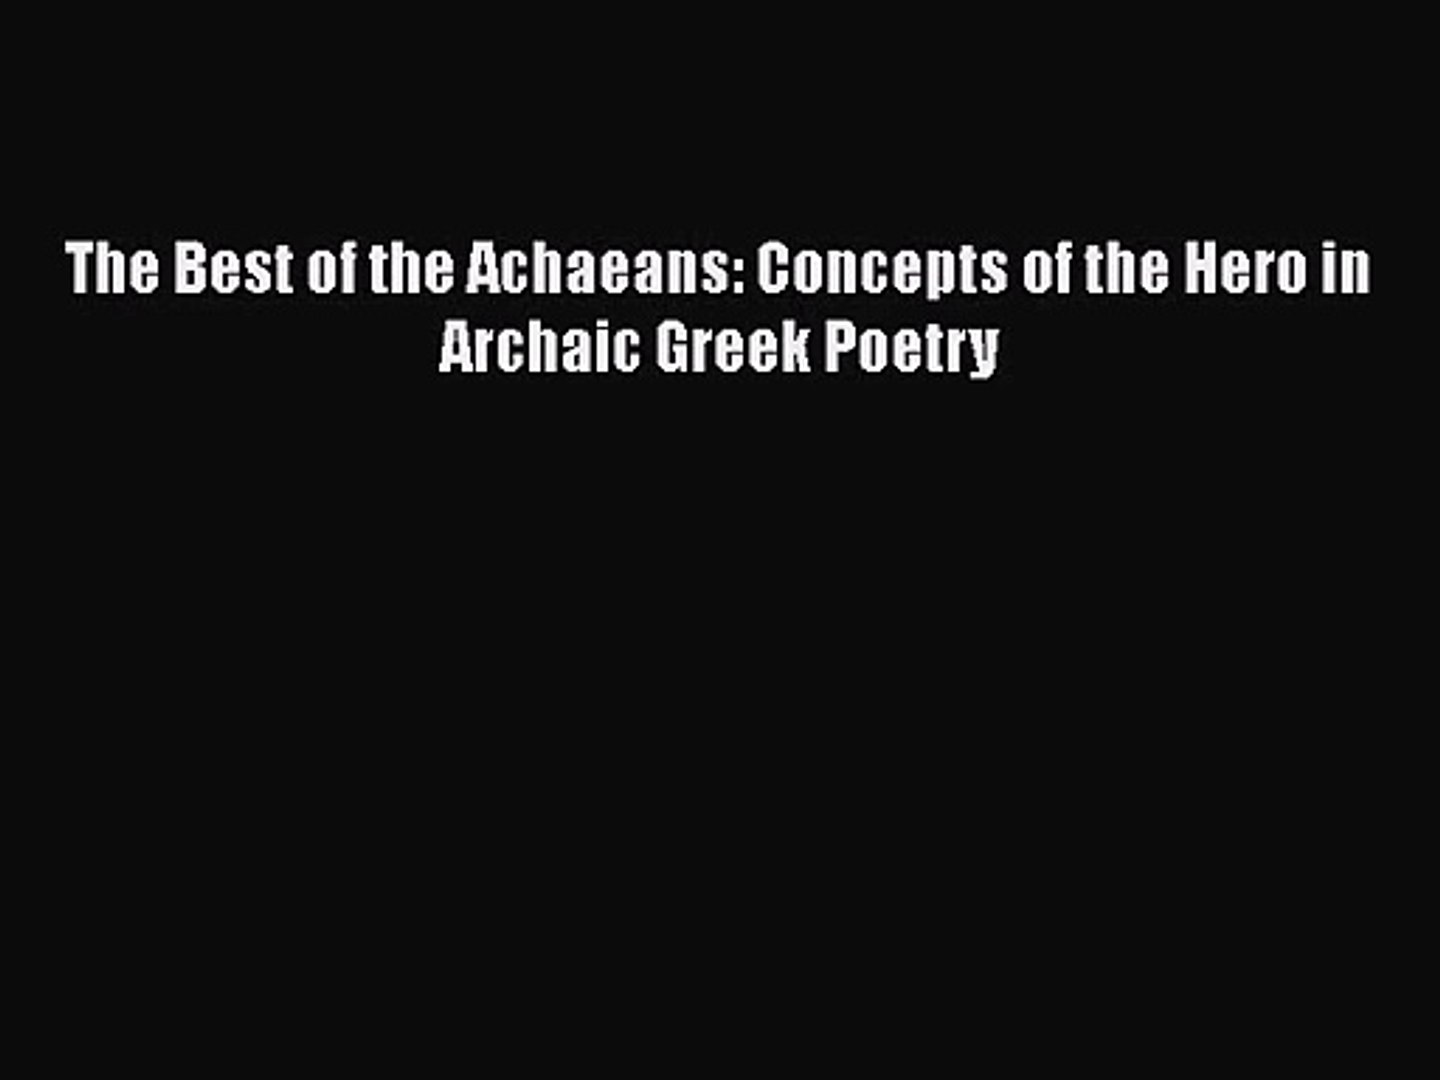 [PDF Download] The Best of the Achaeans: Concepts of the Hero in Archaic Greek Poetry [PDF]